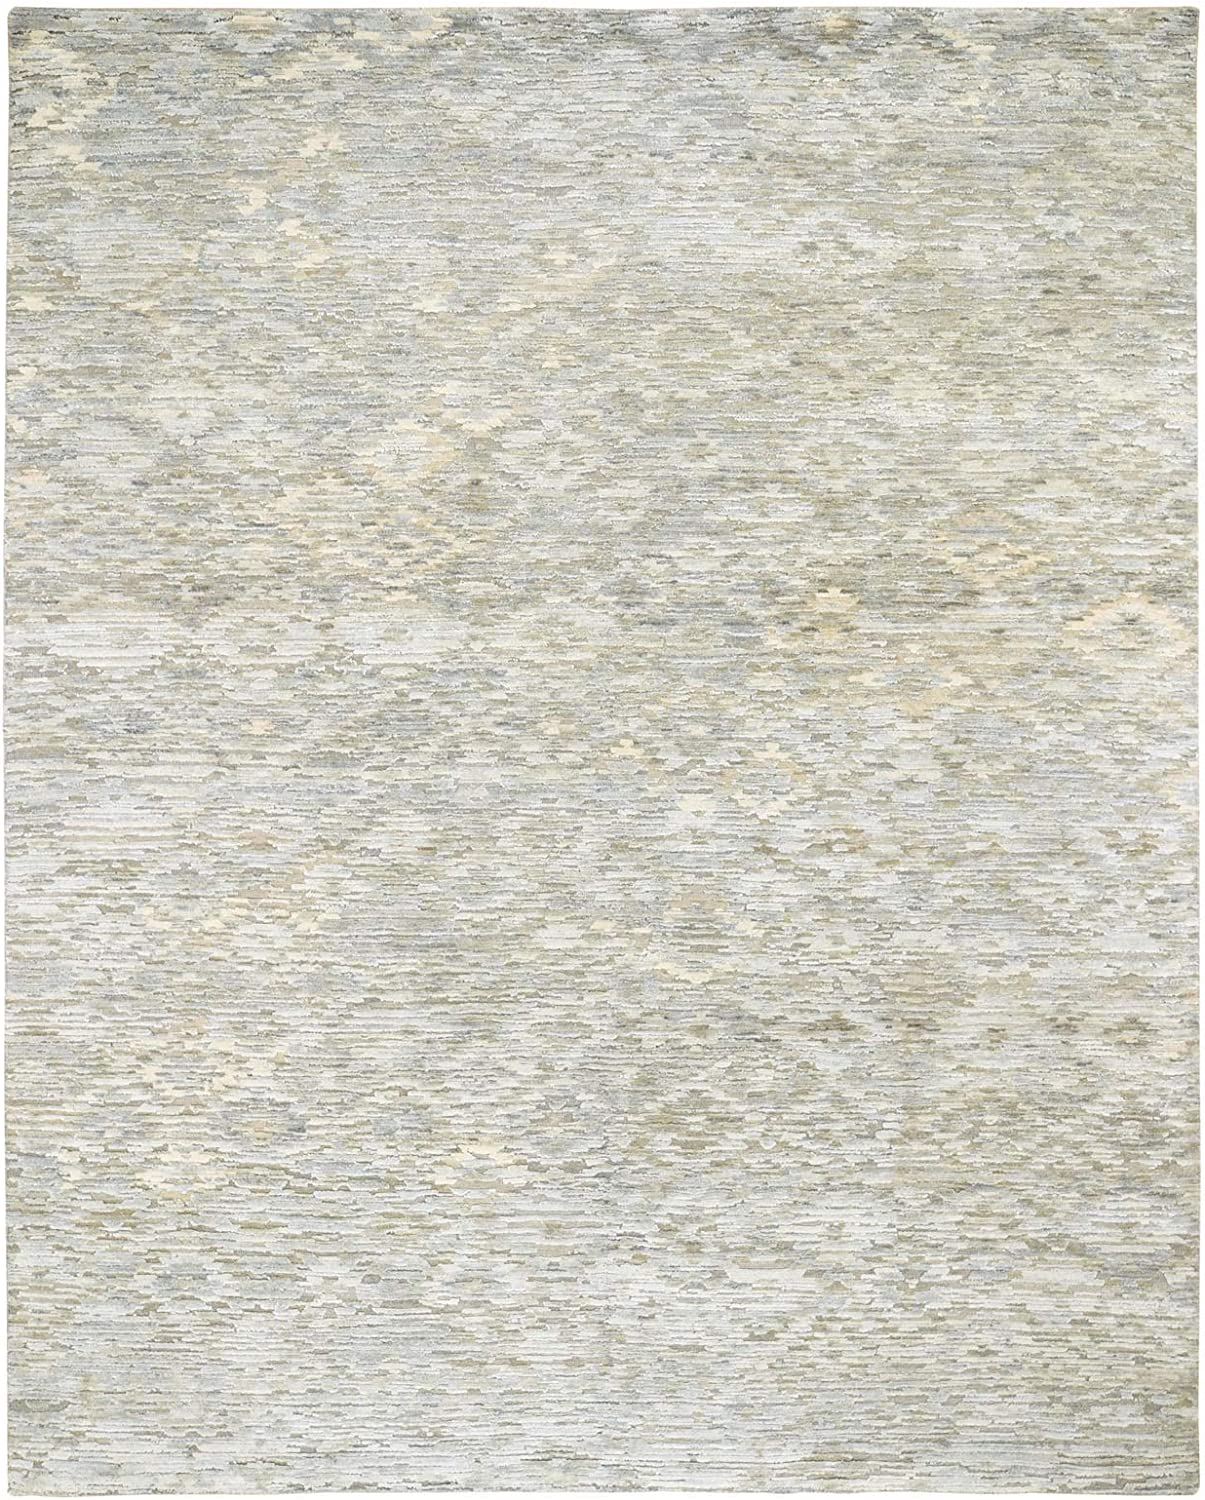 8'x10' THE PASTEL COLLECTION Silk Hand With shipfree Textured Knotte 5% OFF Wool